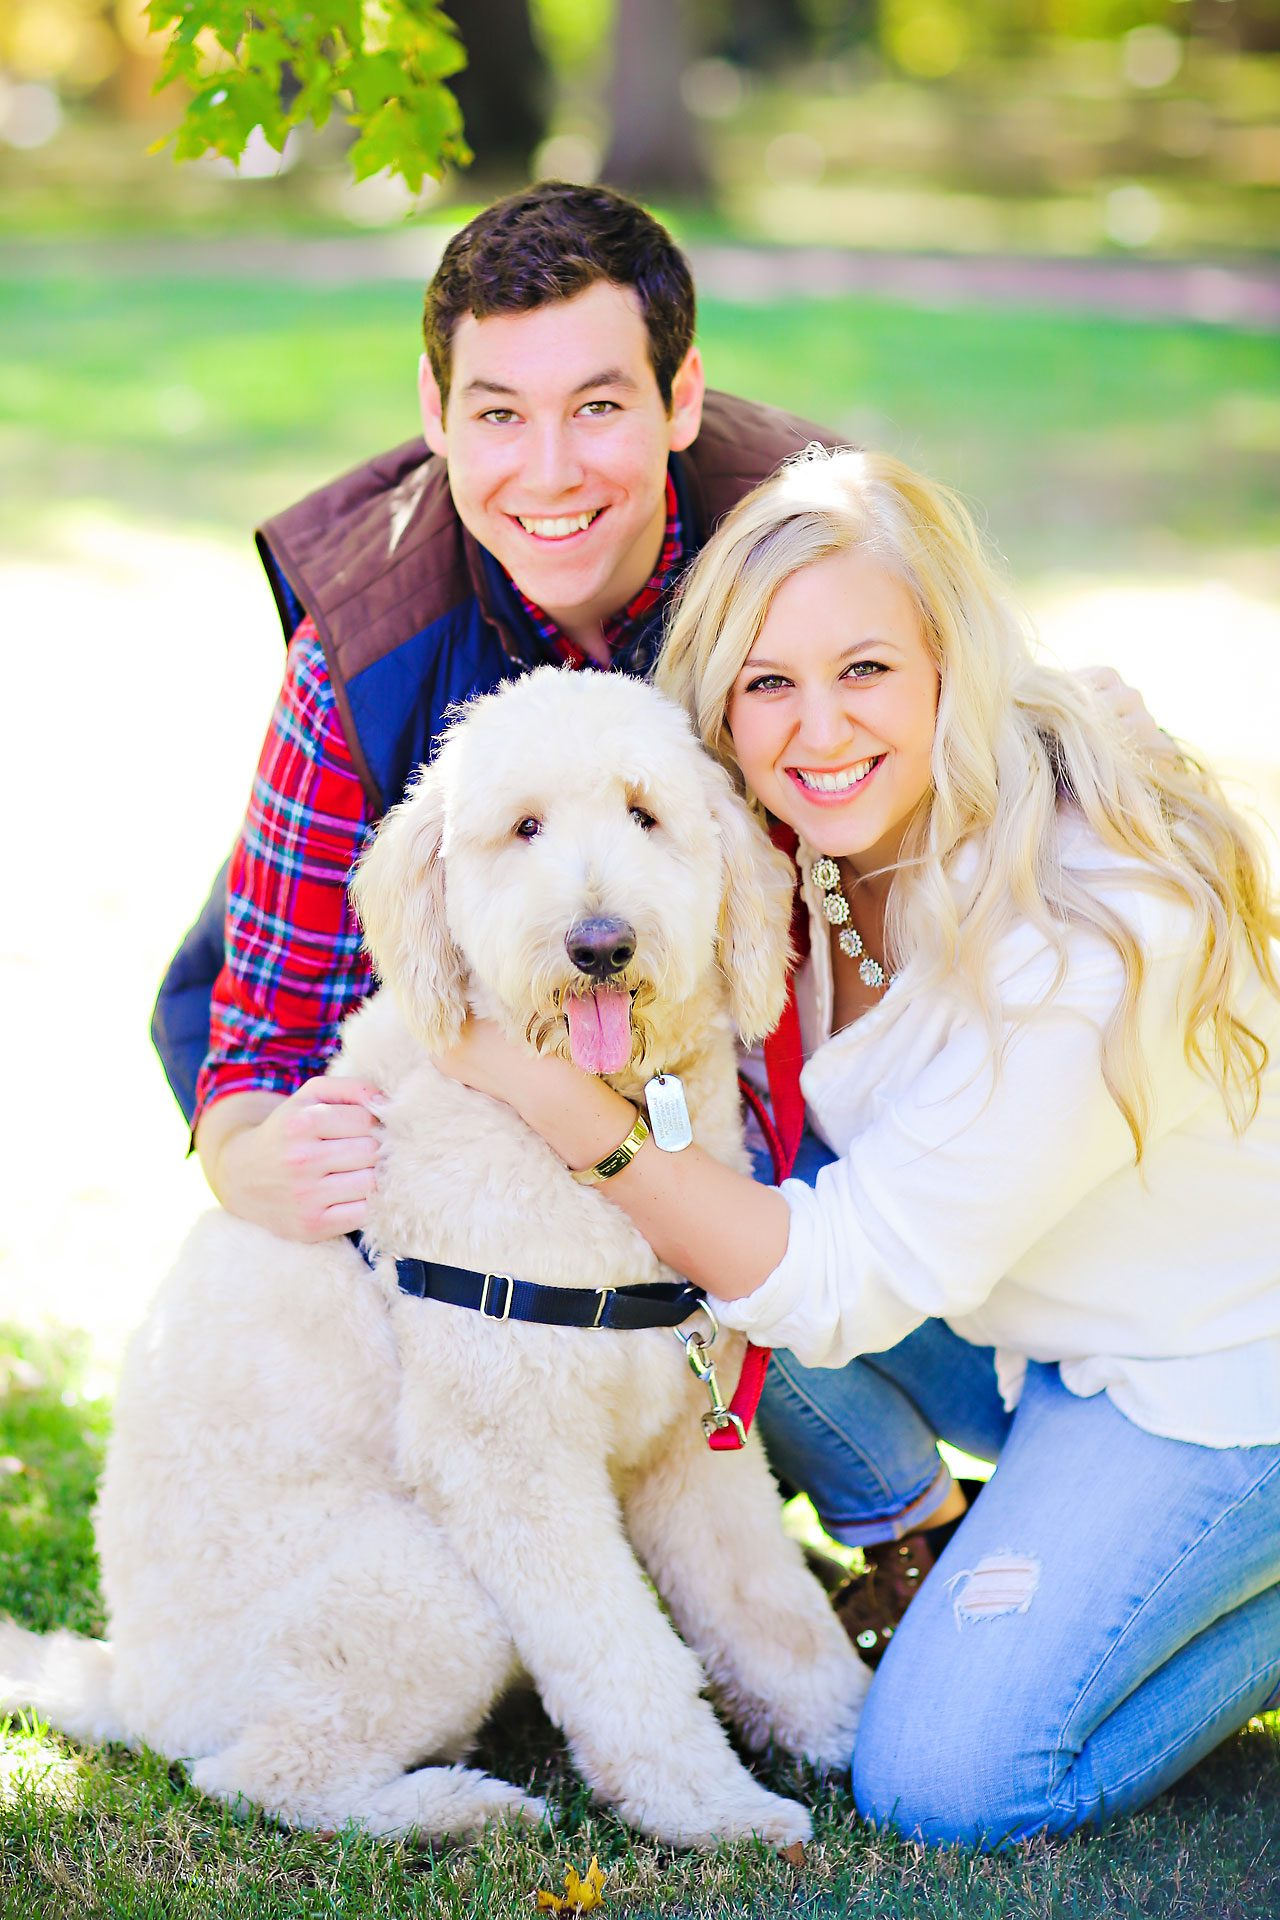 037 Taylor AJ Bloomington Engagement Session